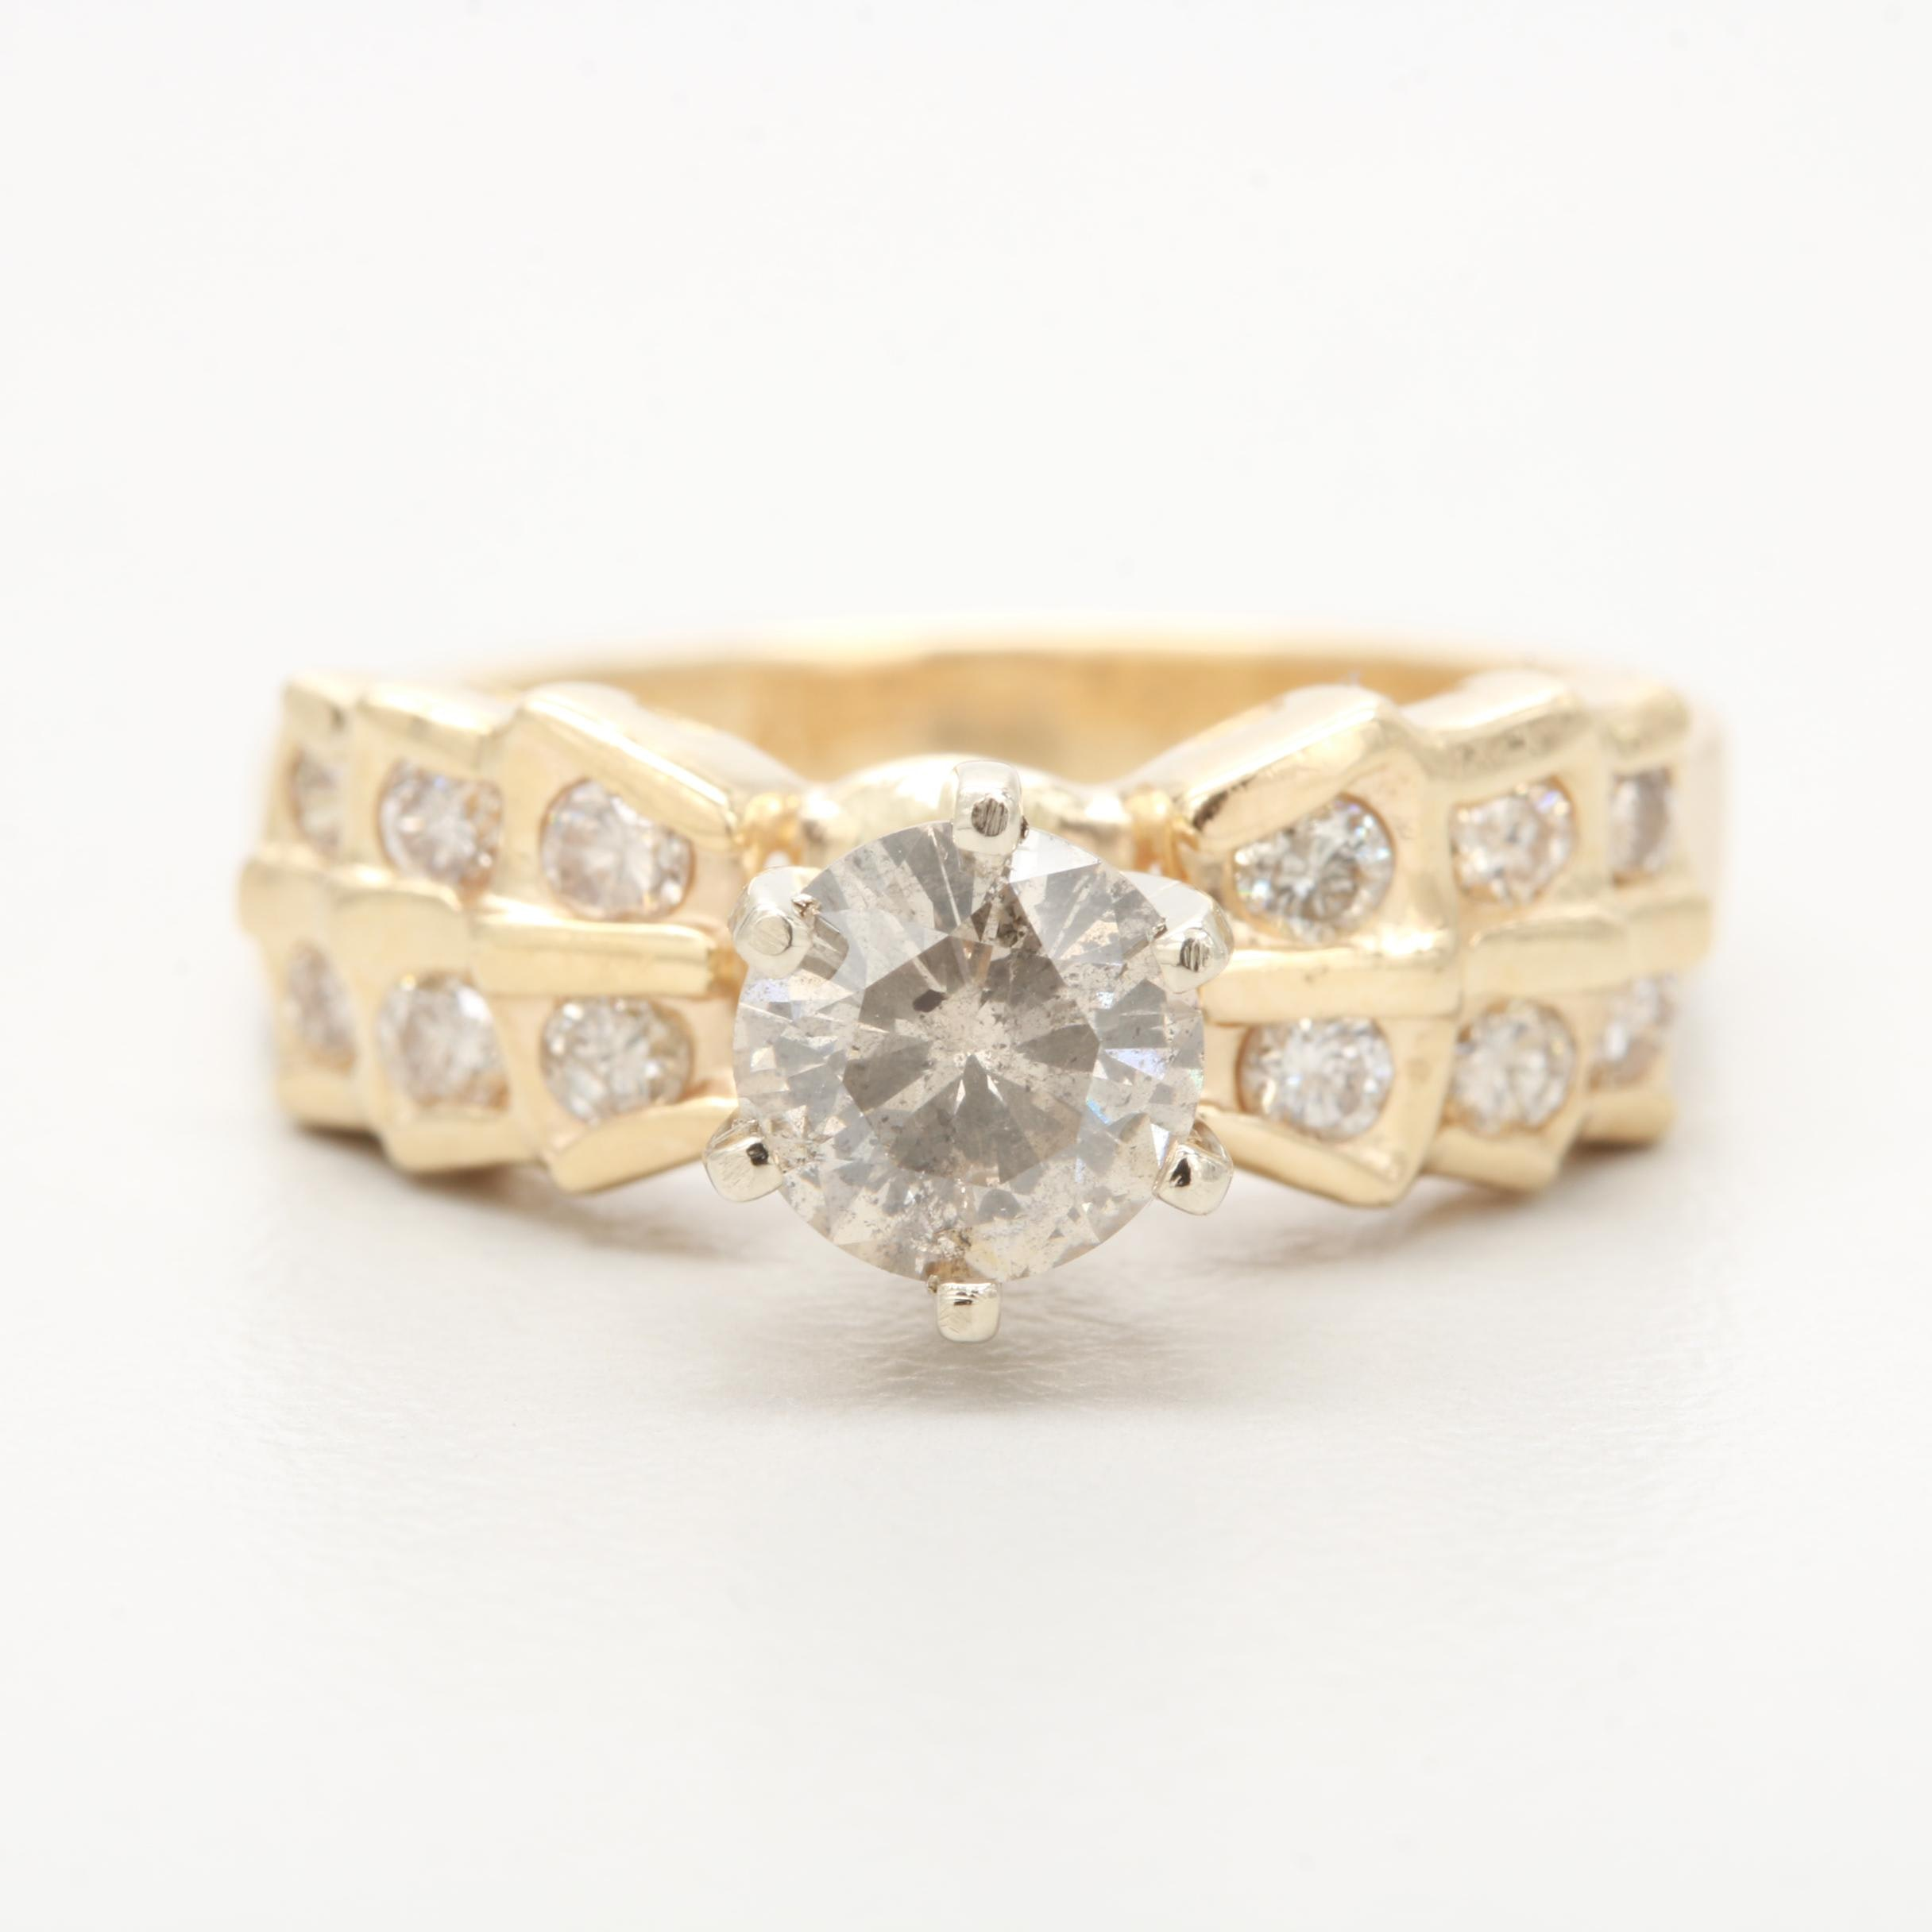 14K Yellow Gold 0.99 CTW Diamond Ring